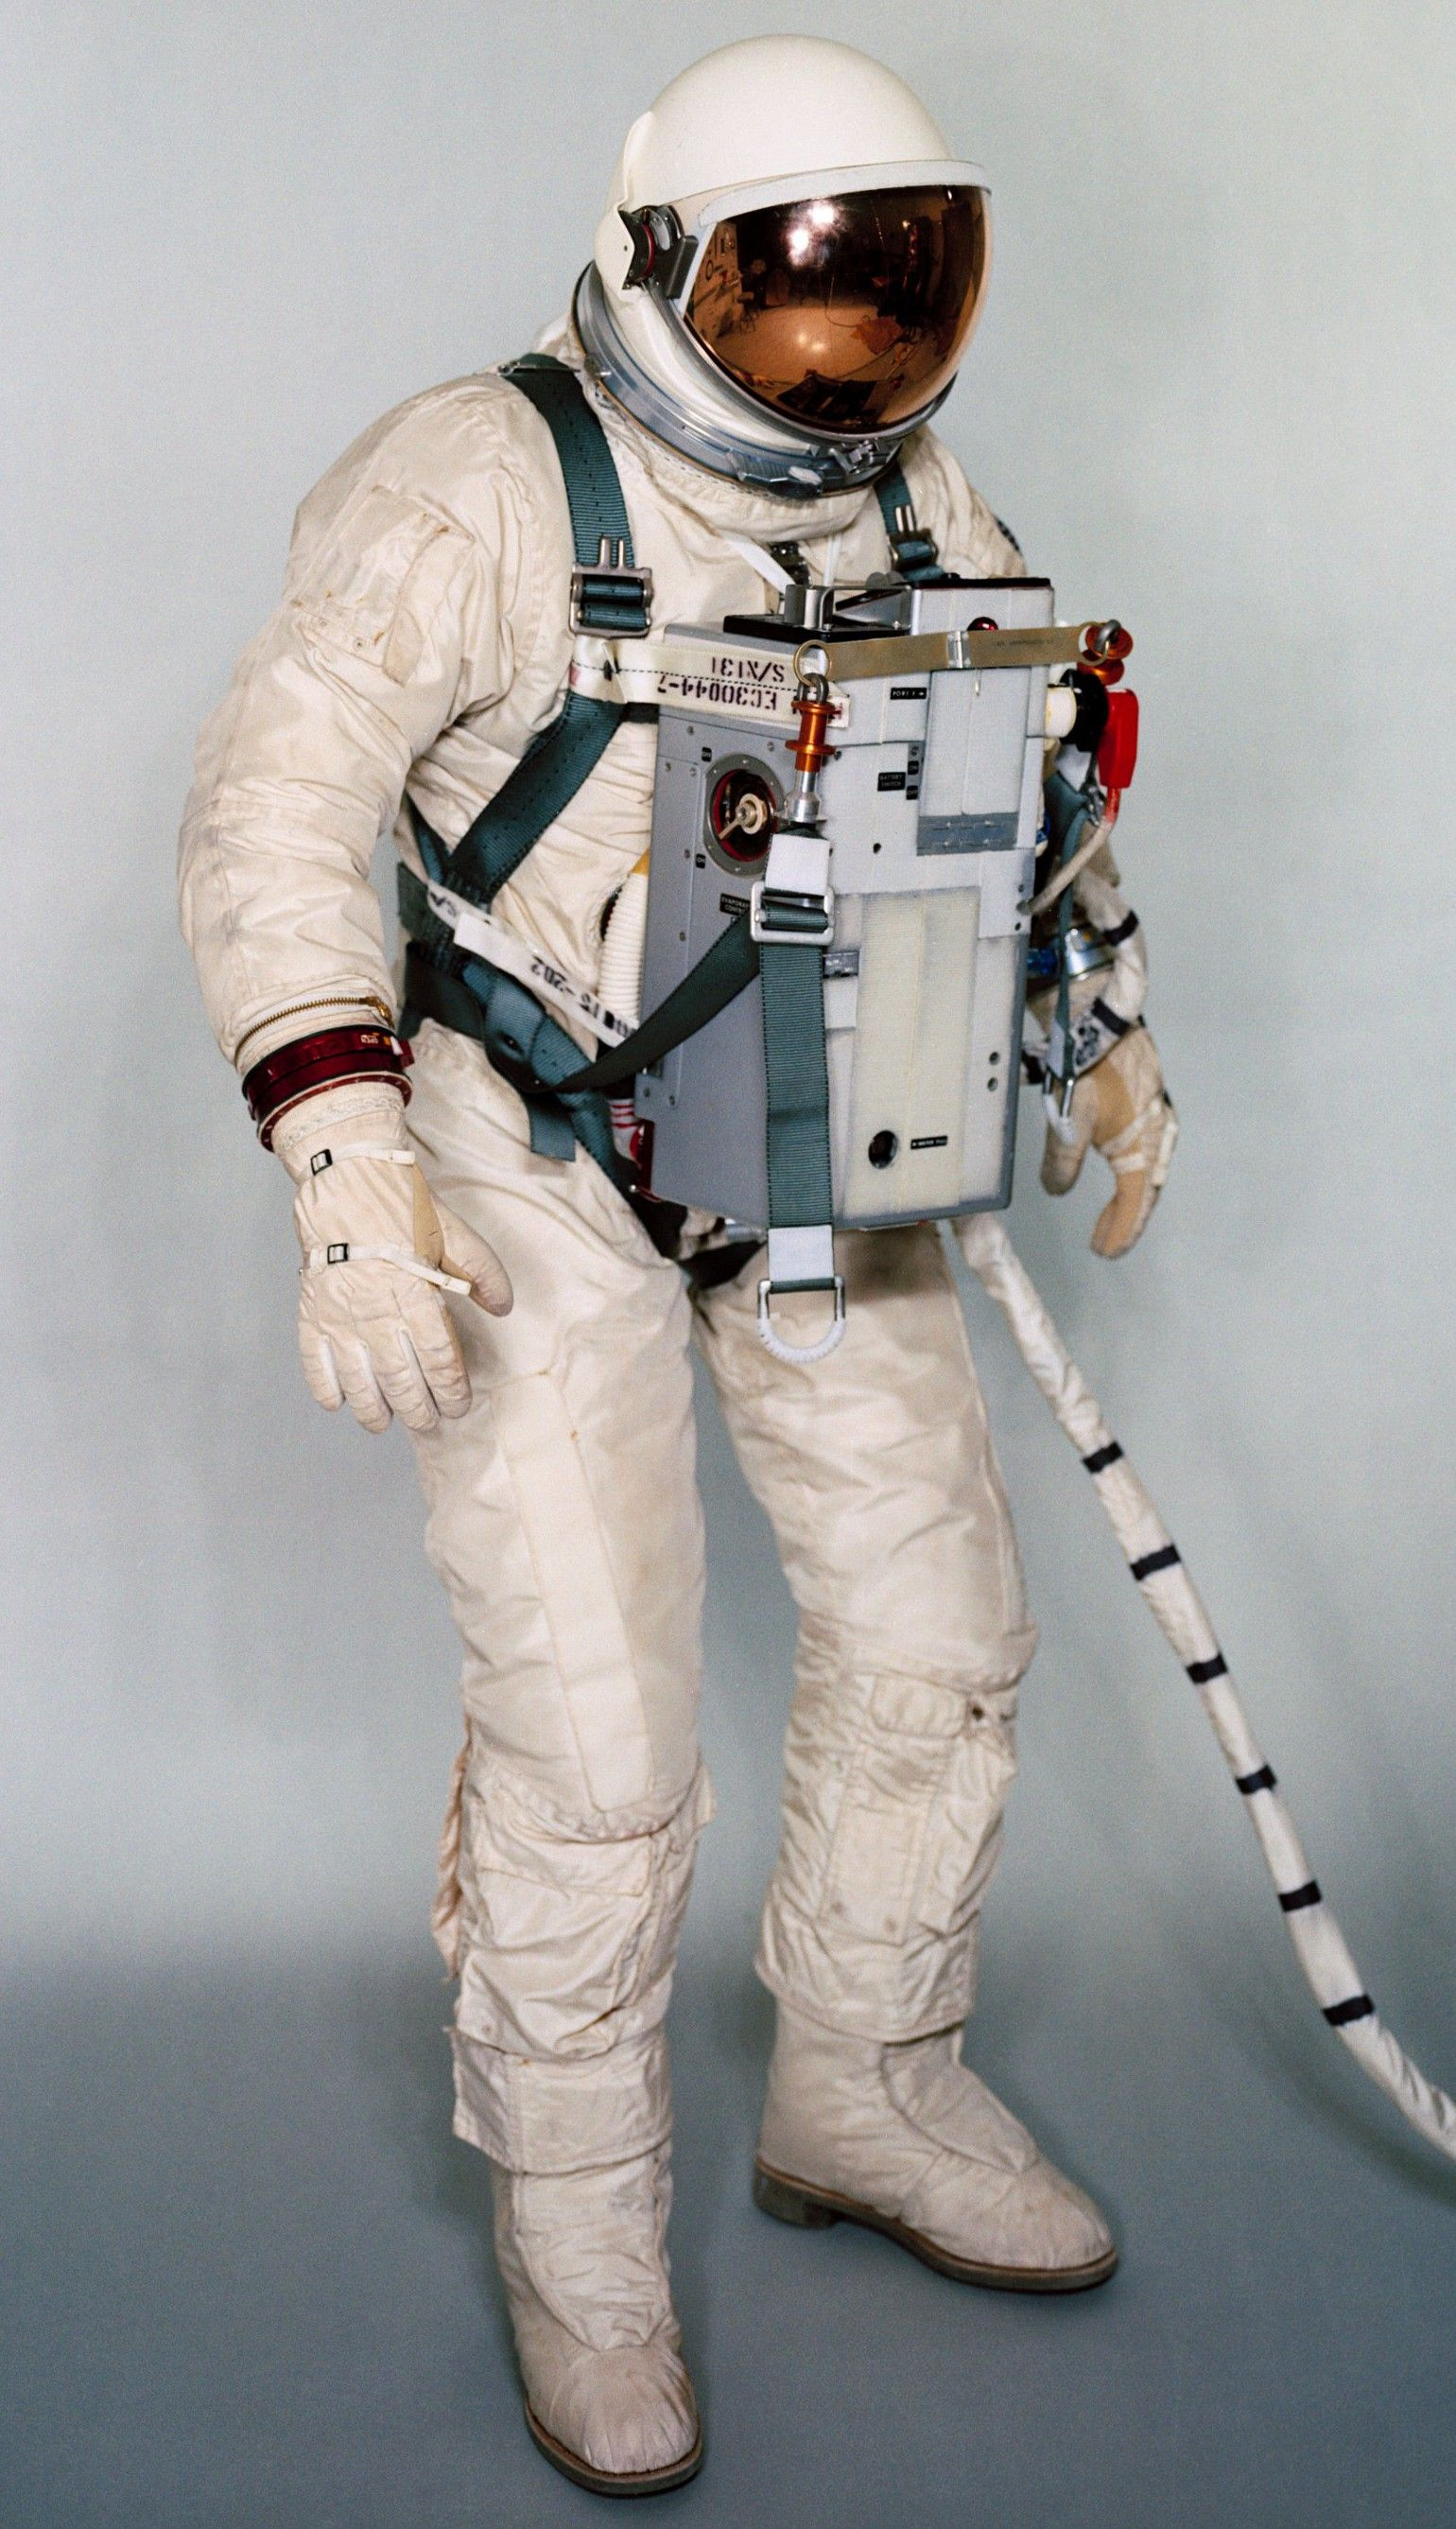 medium resolution of life support system astronaut suit project gemini space girl sci fi characters